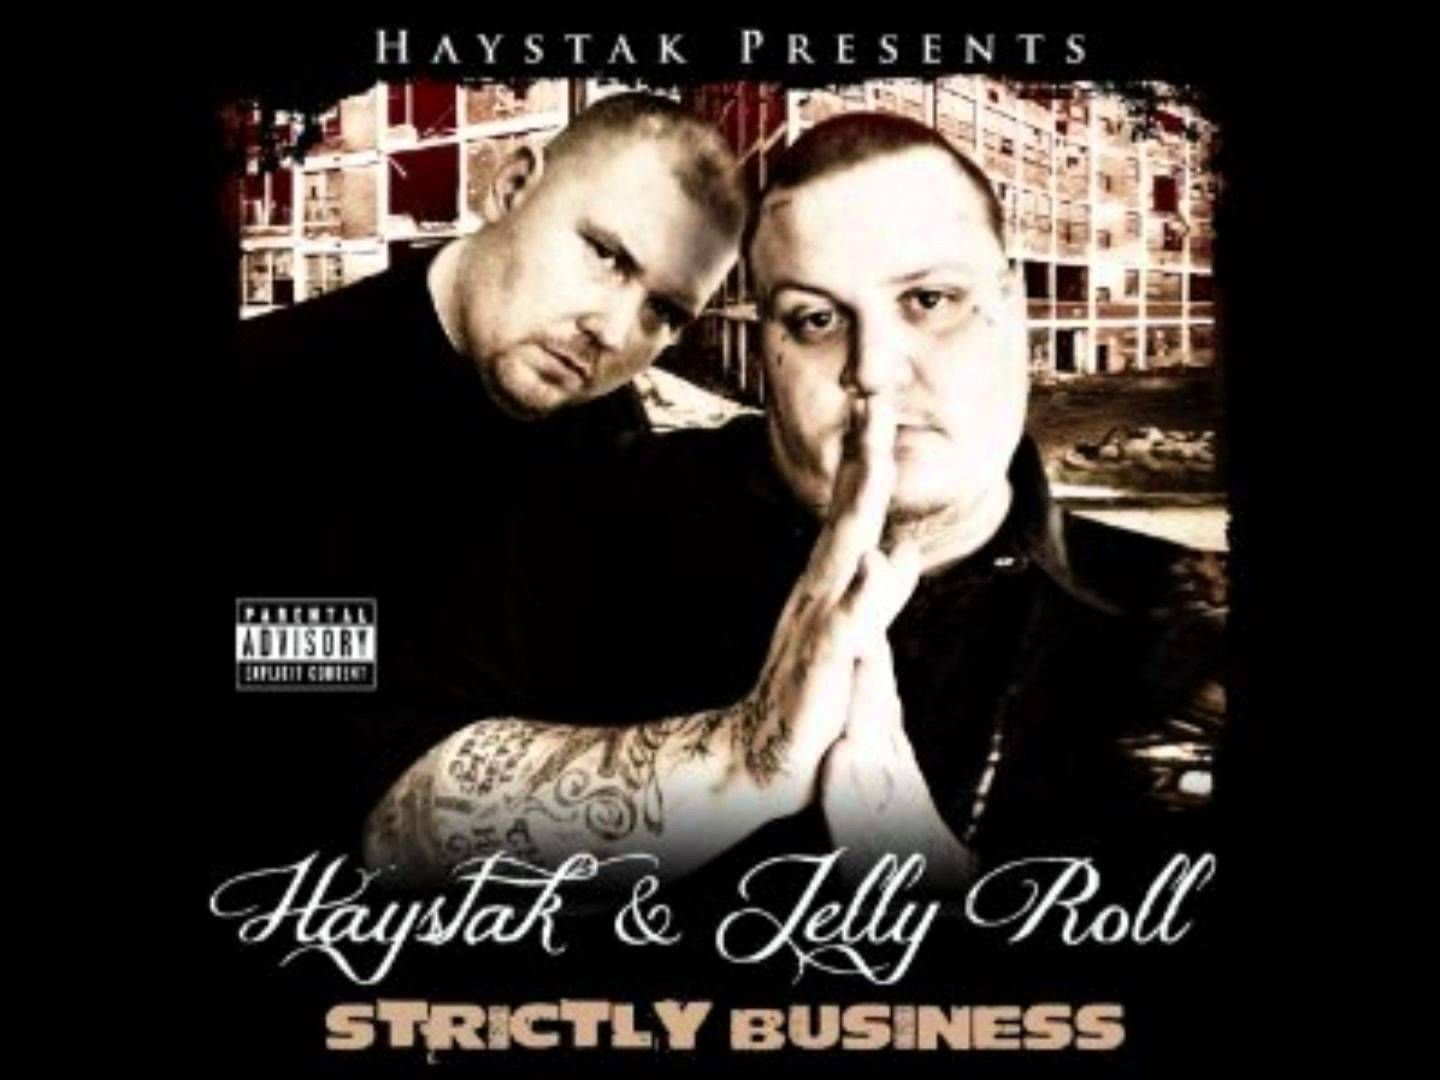 Dont add nothing haystak jelly roll rap artists